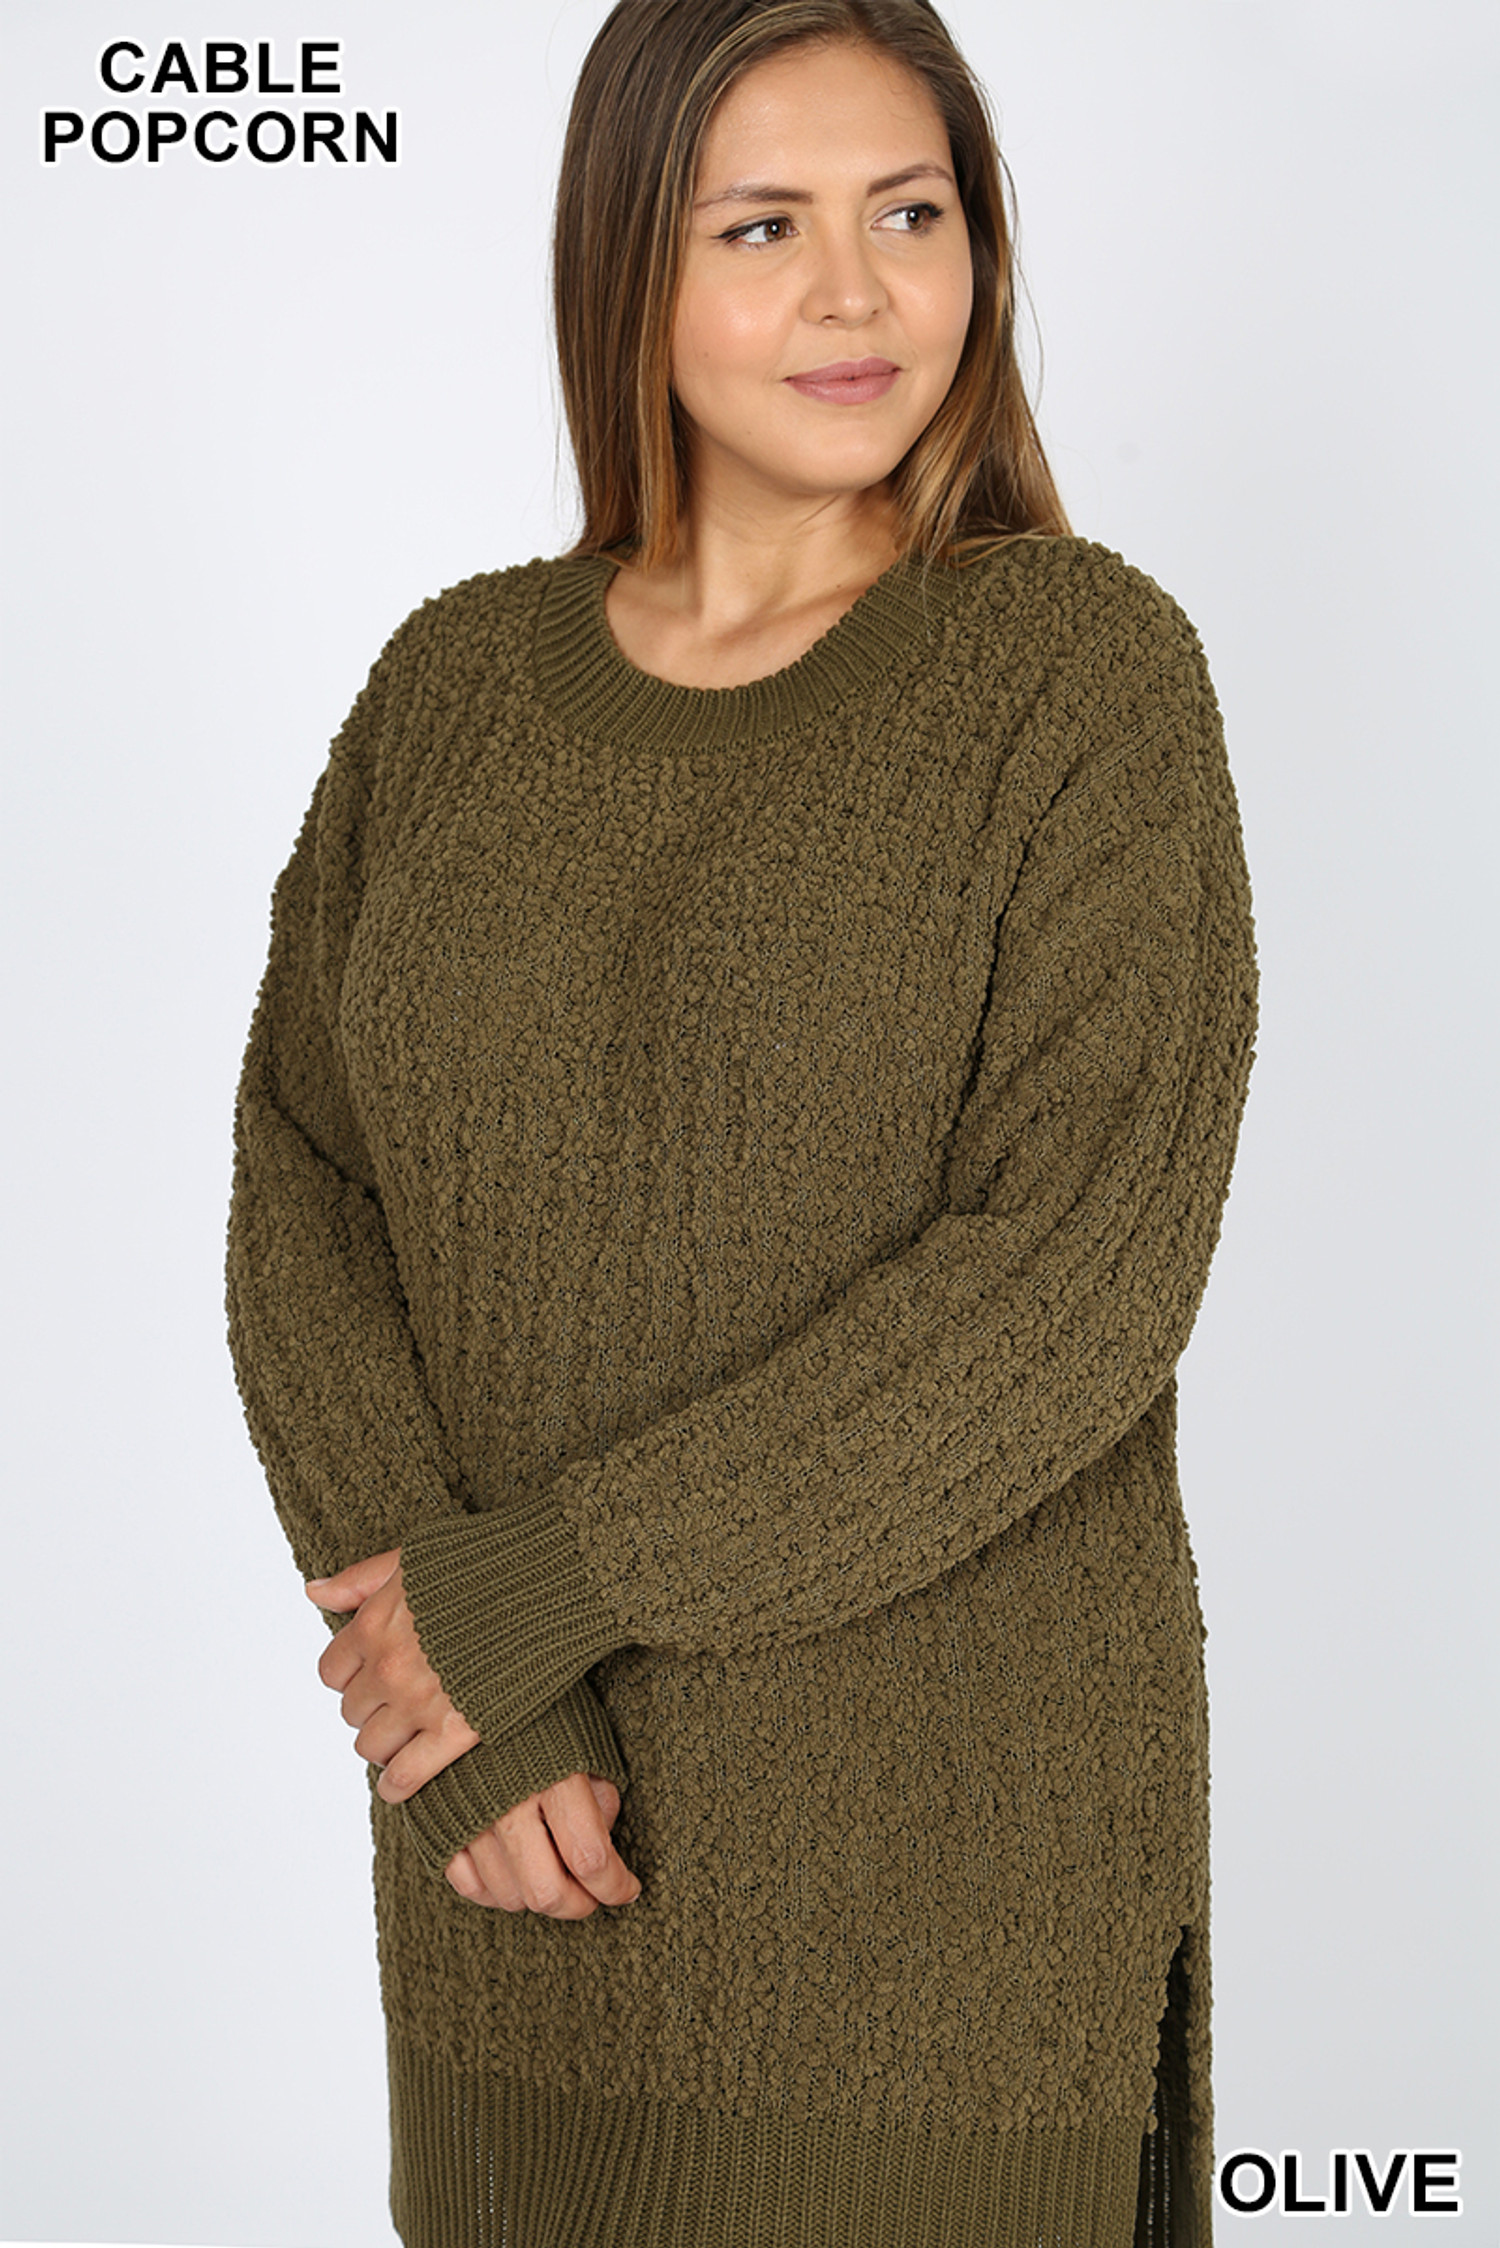 Front image of Olive Cable Knit Popcorn Round Neck Hi-Low Plus Size Sweater